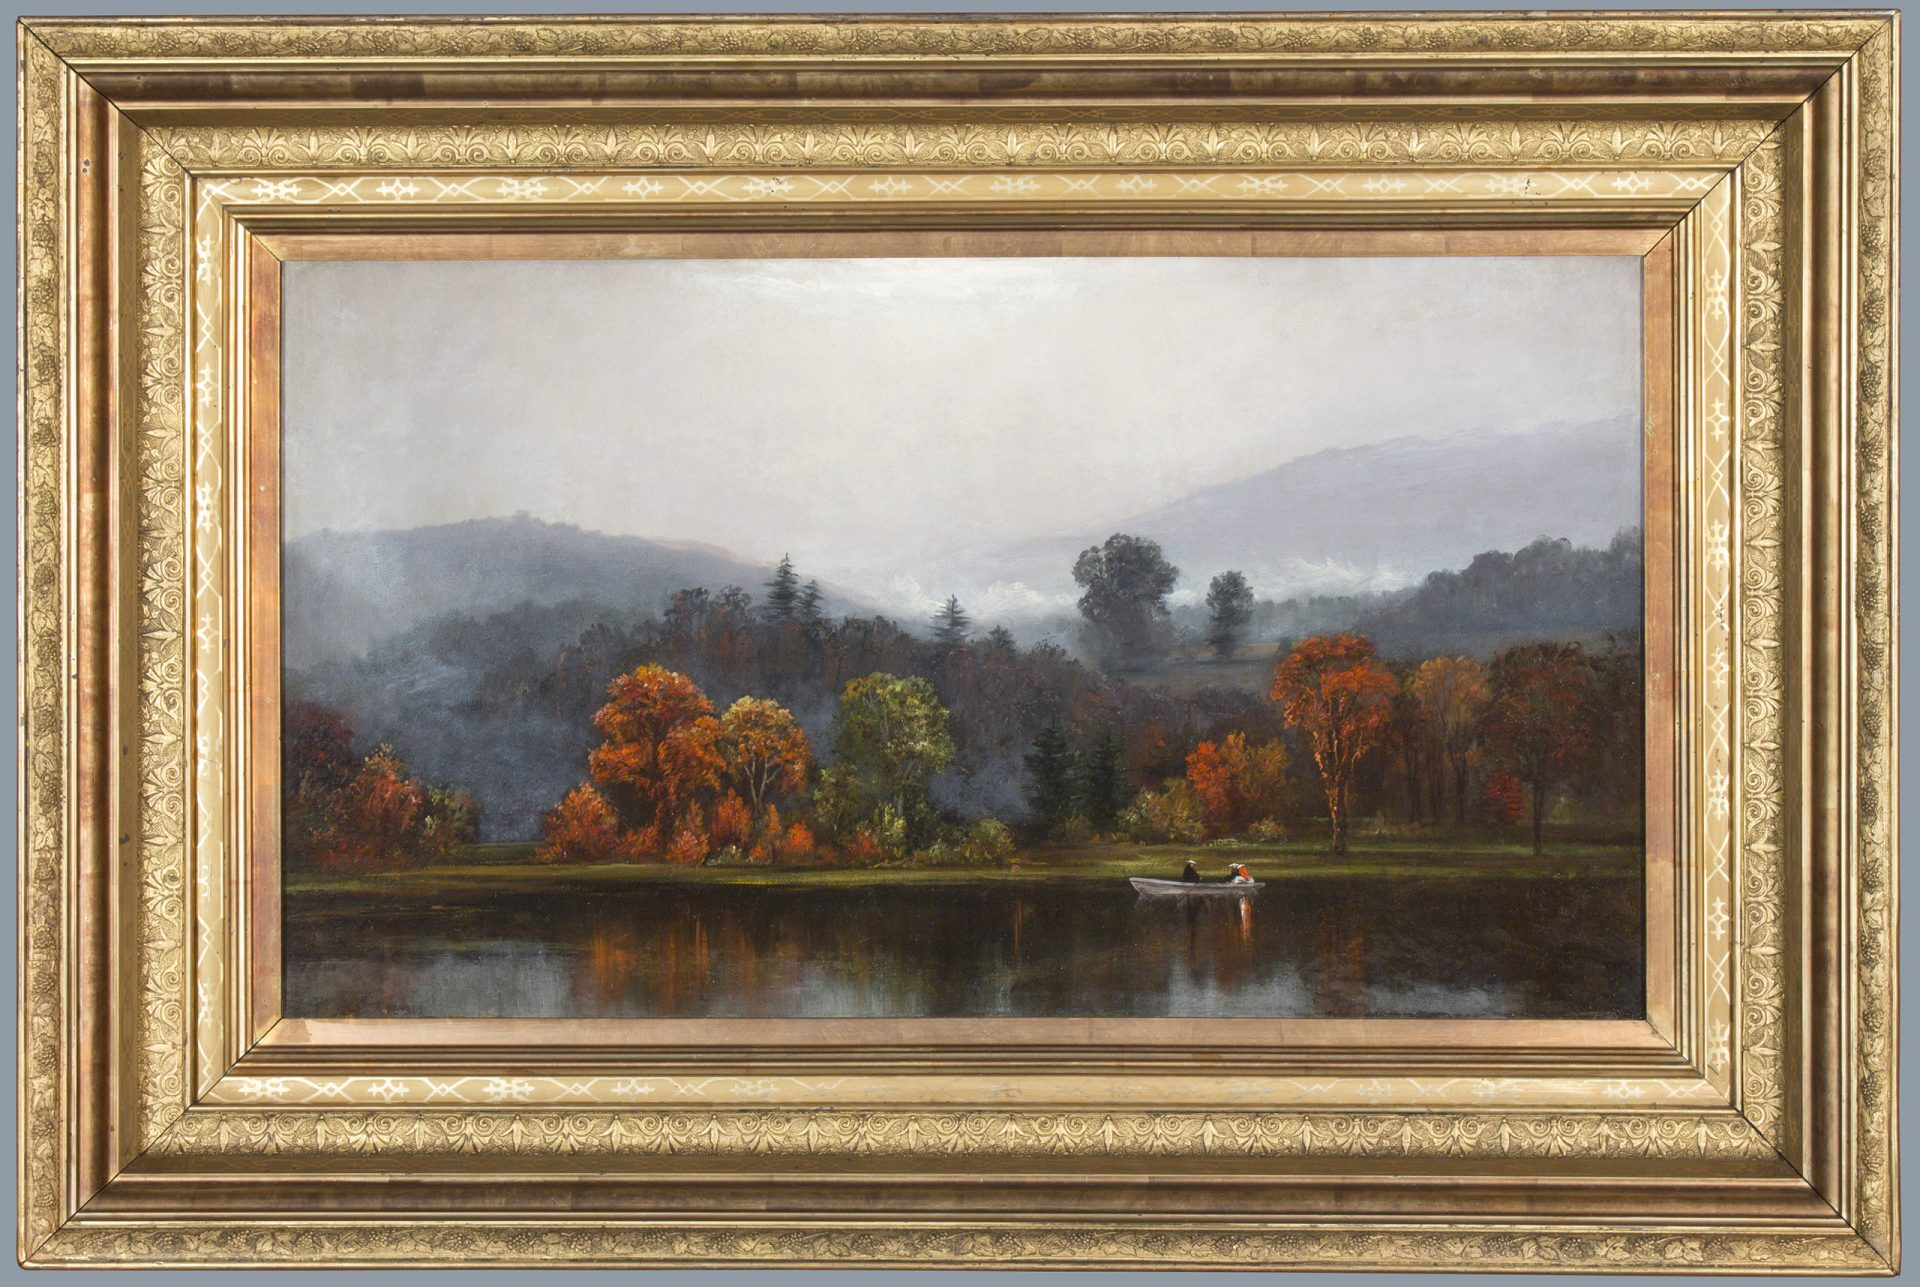 Early Morning in the Delaware Watergap FRAMED (James Hamilton)